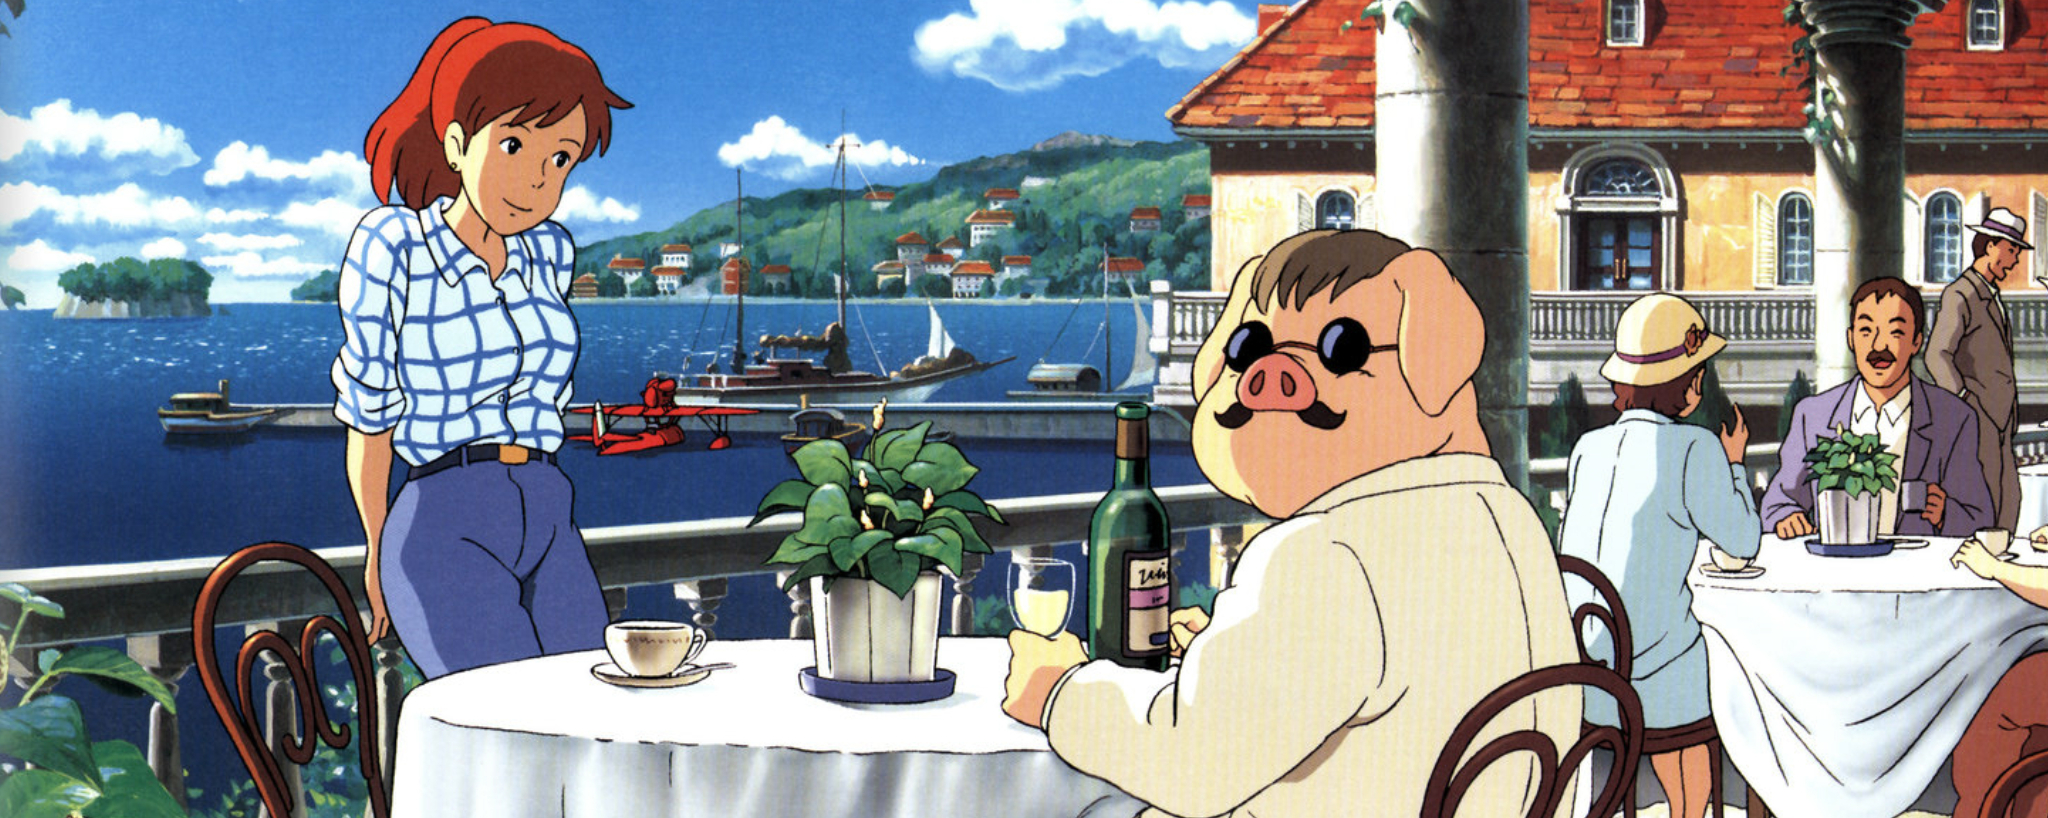 Porco Rosso drinking wine